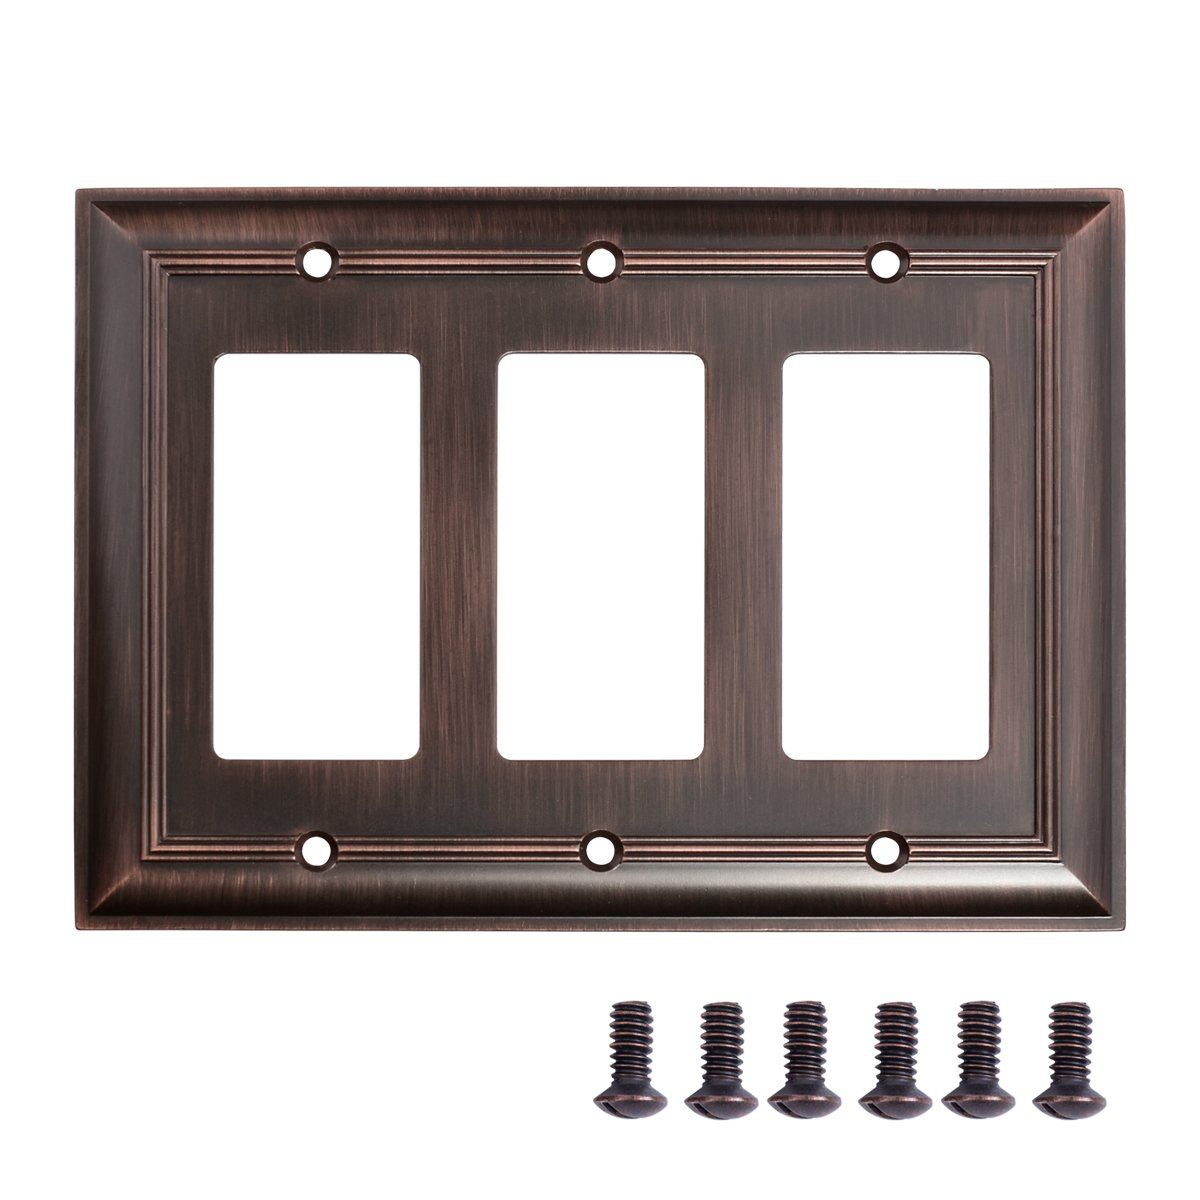 AmazonBasics Triple Gang Wall Plate, Oil Rubbed Bronze, 1-Pack